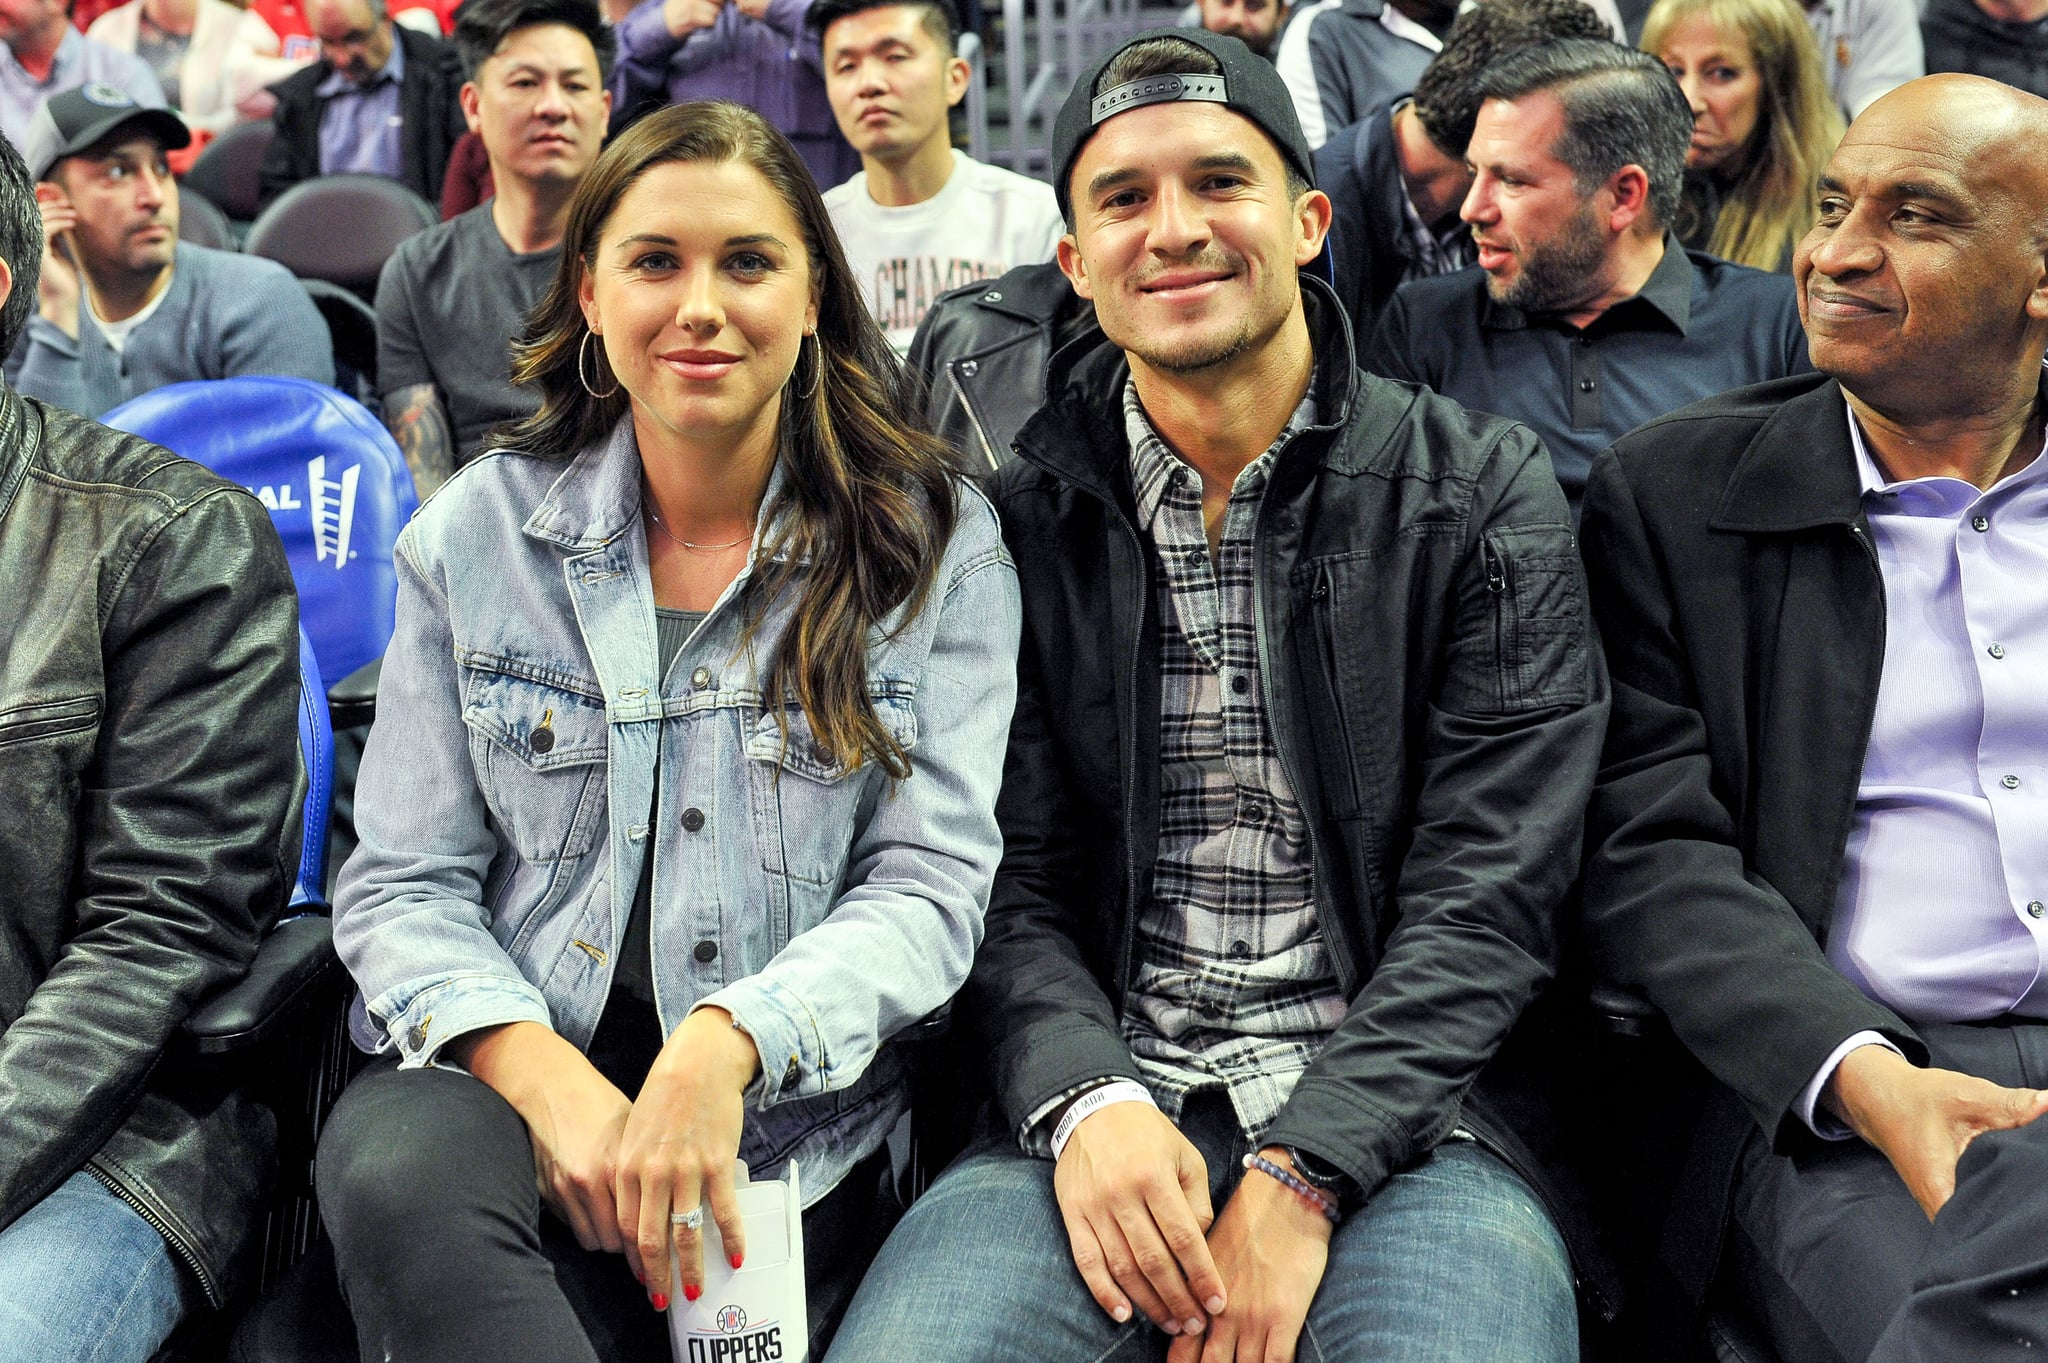 LOS ANGELES, CALIFORNIA - DECEMBER 17: Alex Morgan and Servando Carrasco attend a basketball game between the Los Angeles Clippers and the Phoenix Suns at Staples Centre on December 17, 2019 in Los Angeles, California. (Photo by Allen Berezovsky/Getty Images)